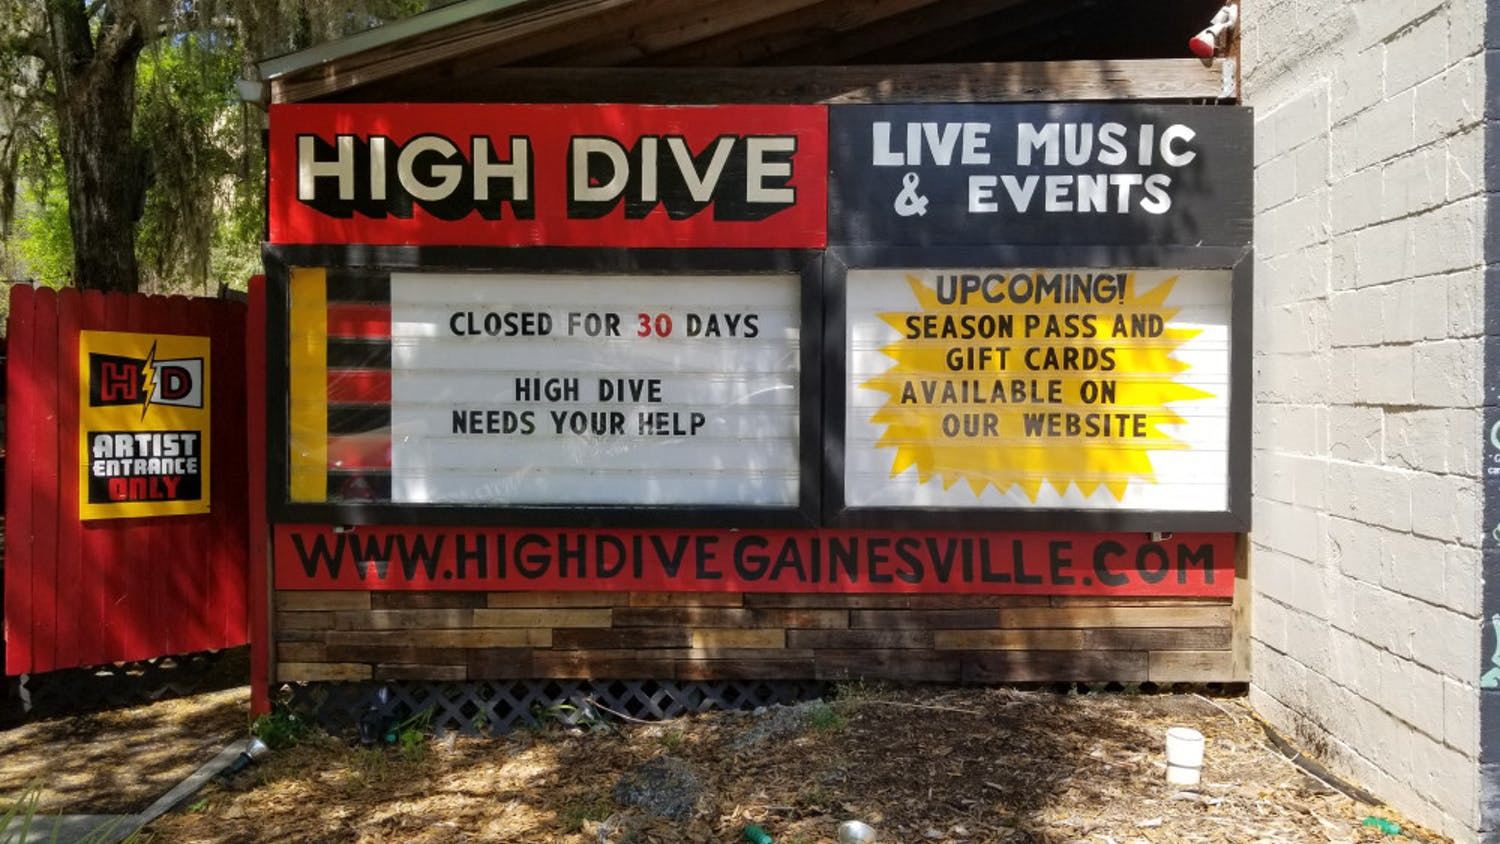 High Dive has launched a GoFundMe page and a Summer 2020 season pass starting at $59 in an effort to offset the strain placed on the venue by the COVID-19 pandemic.